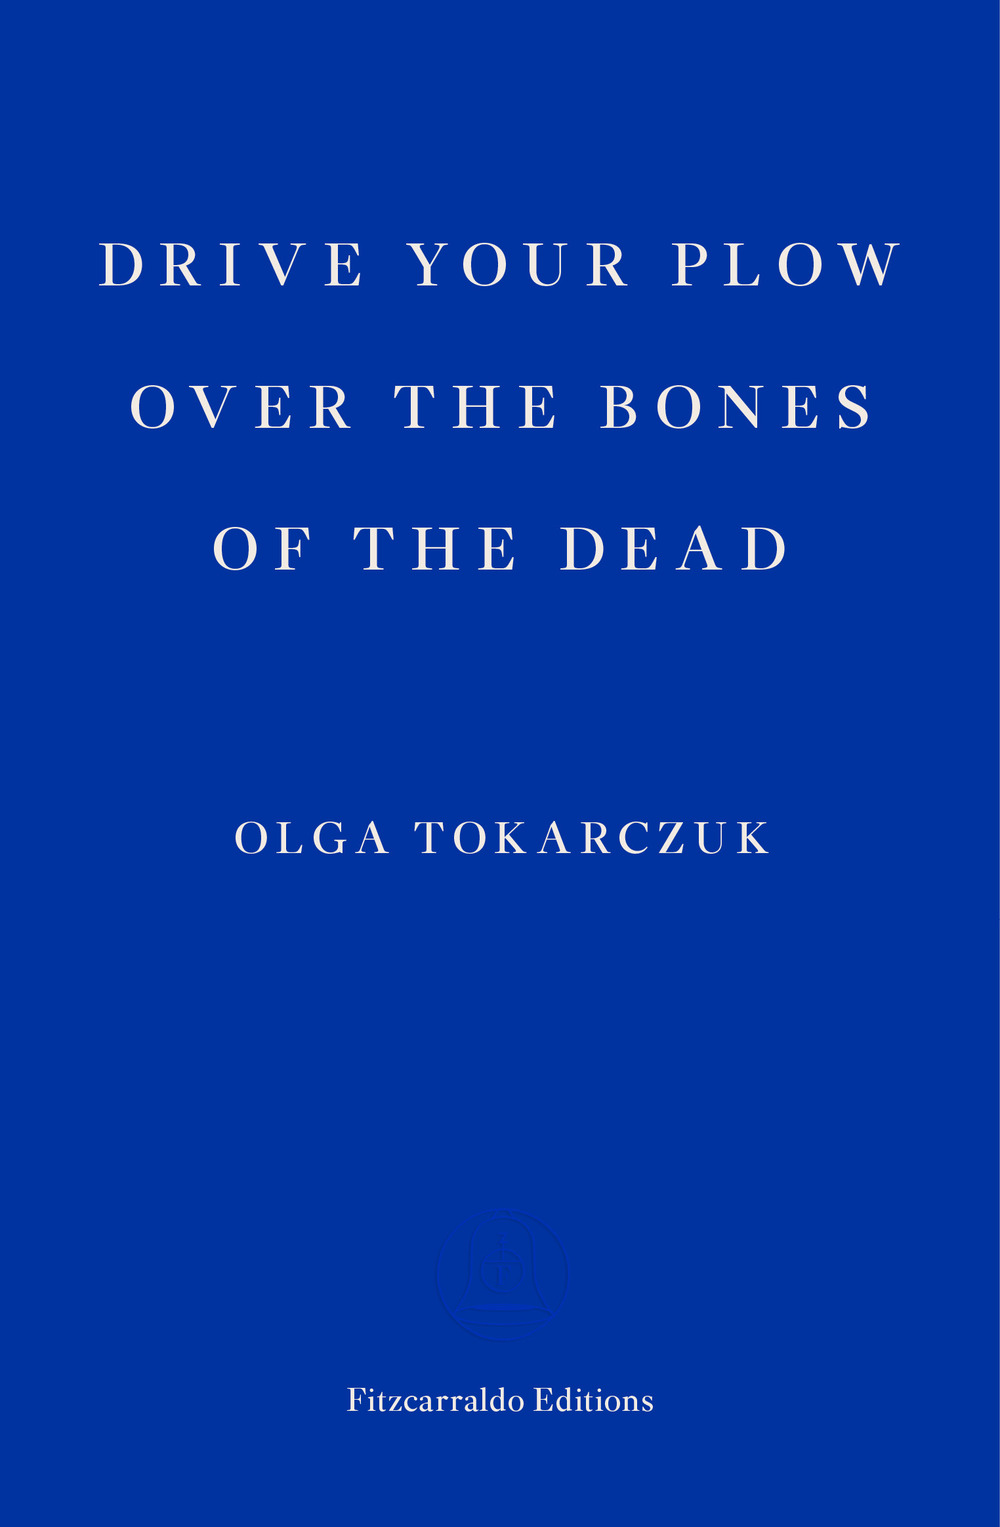 Large olga tokarczuk   drive your plow over the bones of the dead